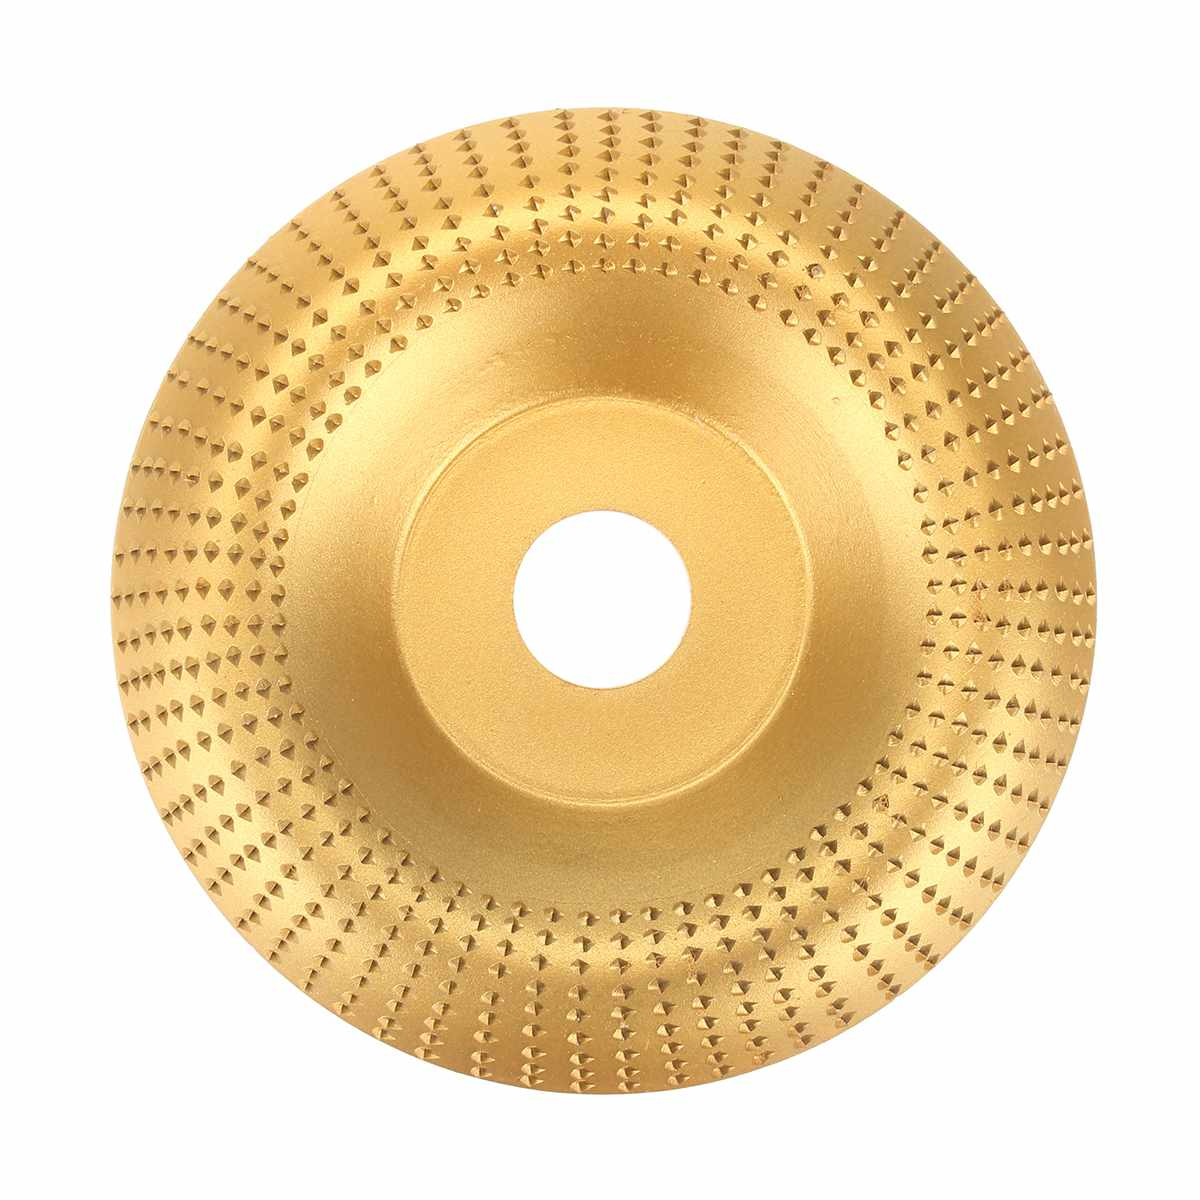 125mm Wood Shaping Disc Tungsten Carbide Wood Carving Disc Grinder Wheel Abrasive Disc Sanding Rotary Tool For Angle Grinder